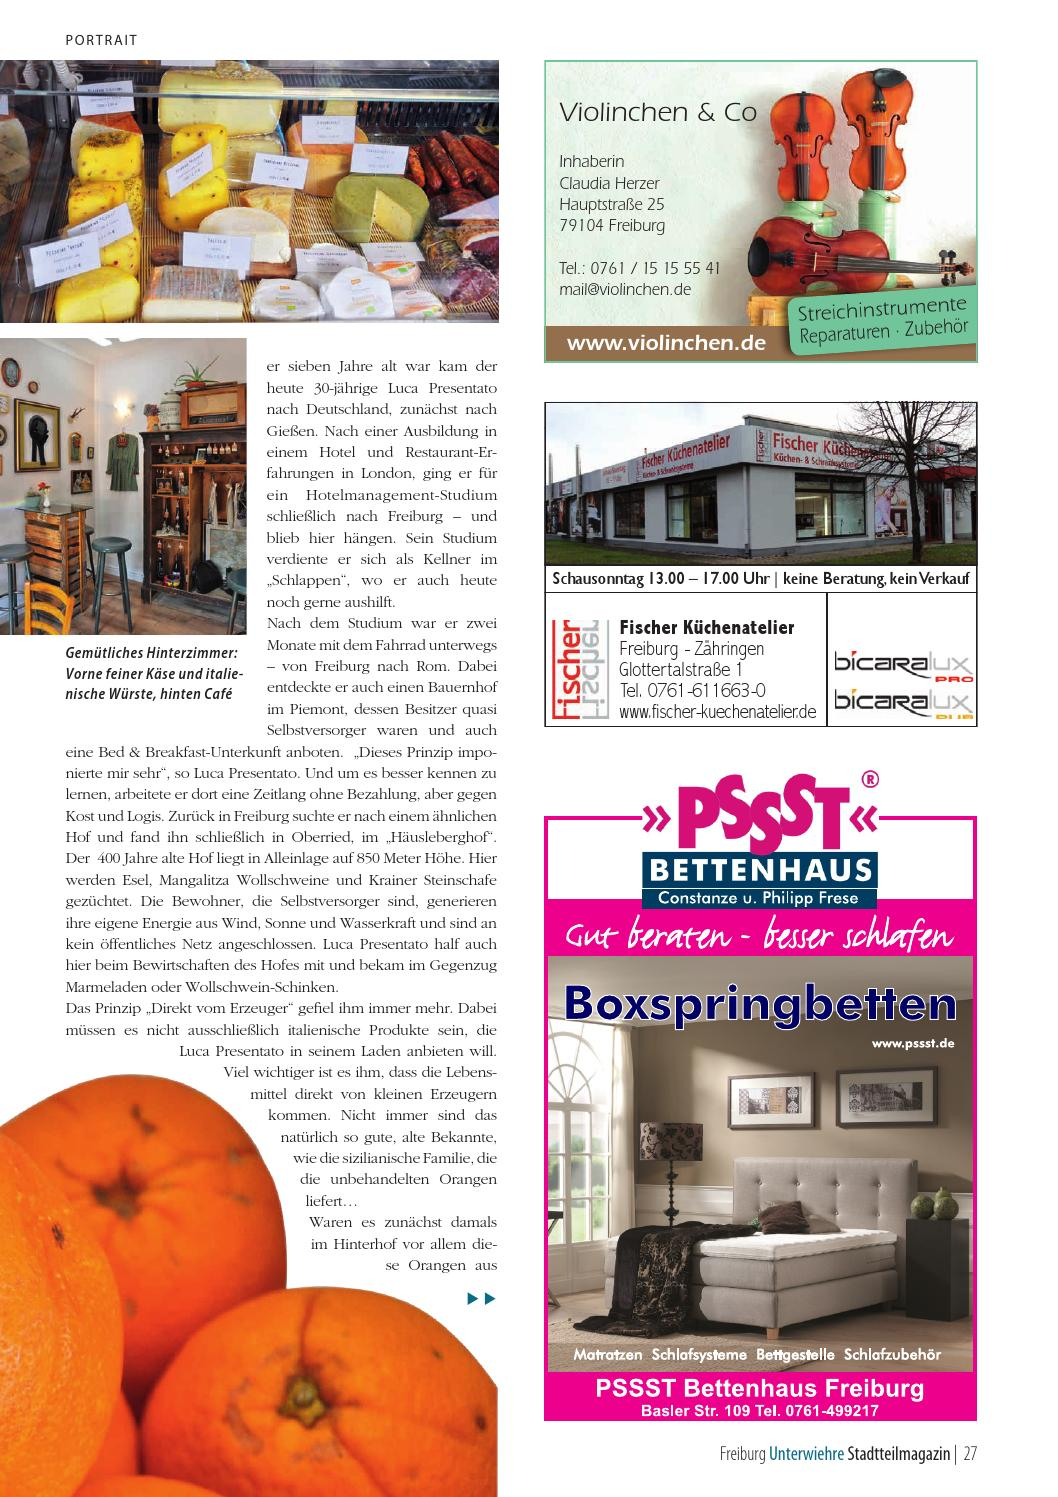 Bettenhaus Freiburg Wiehre Magazin April 2016